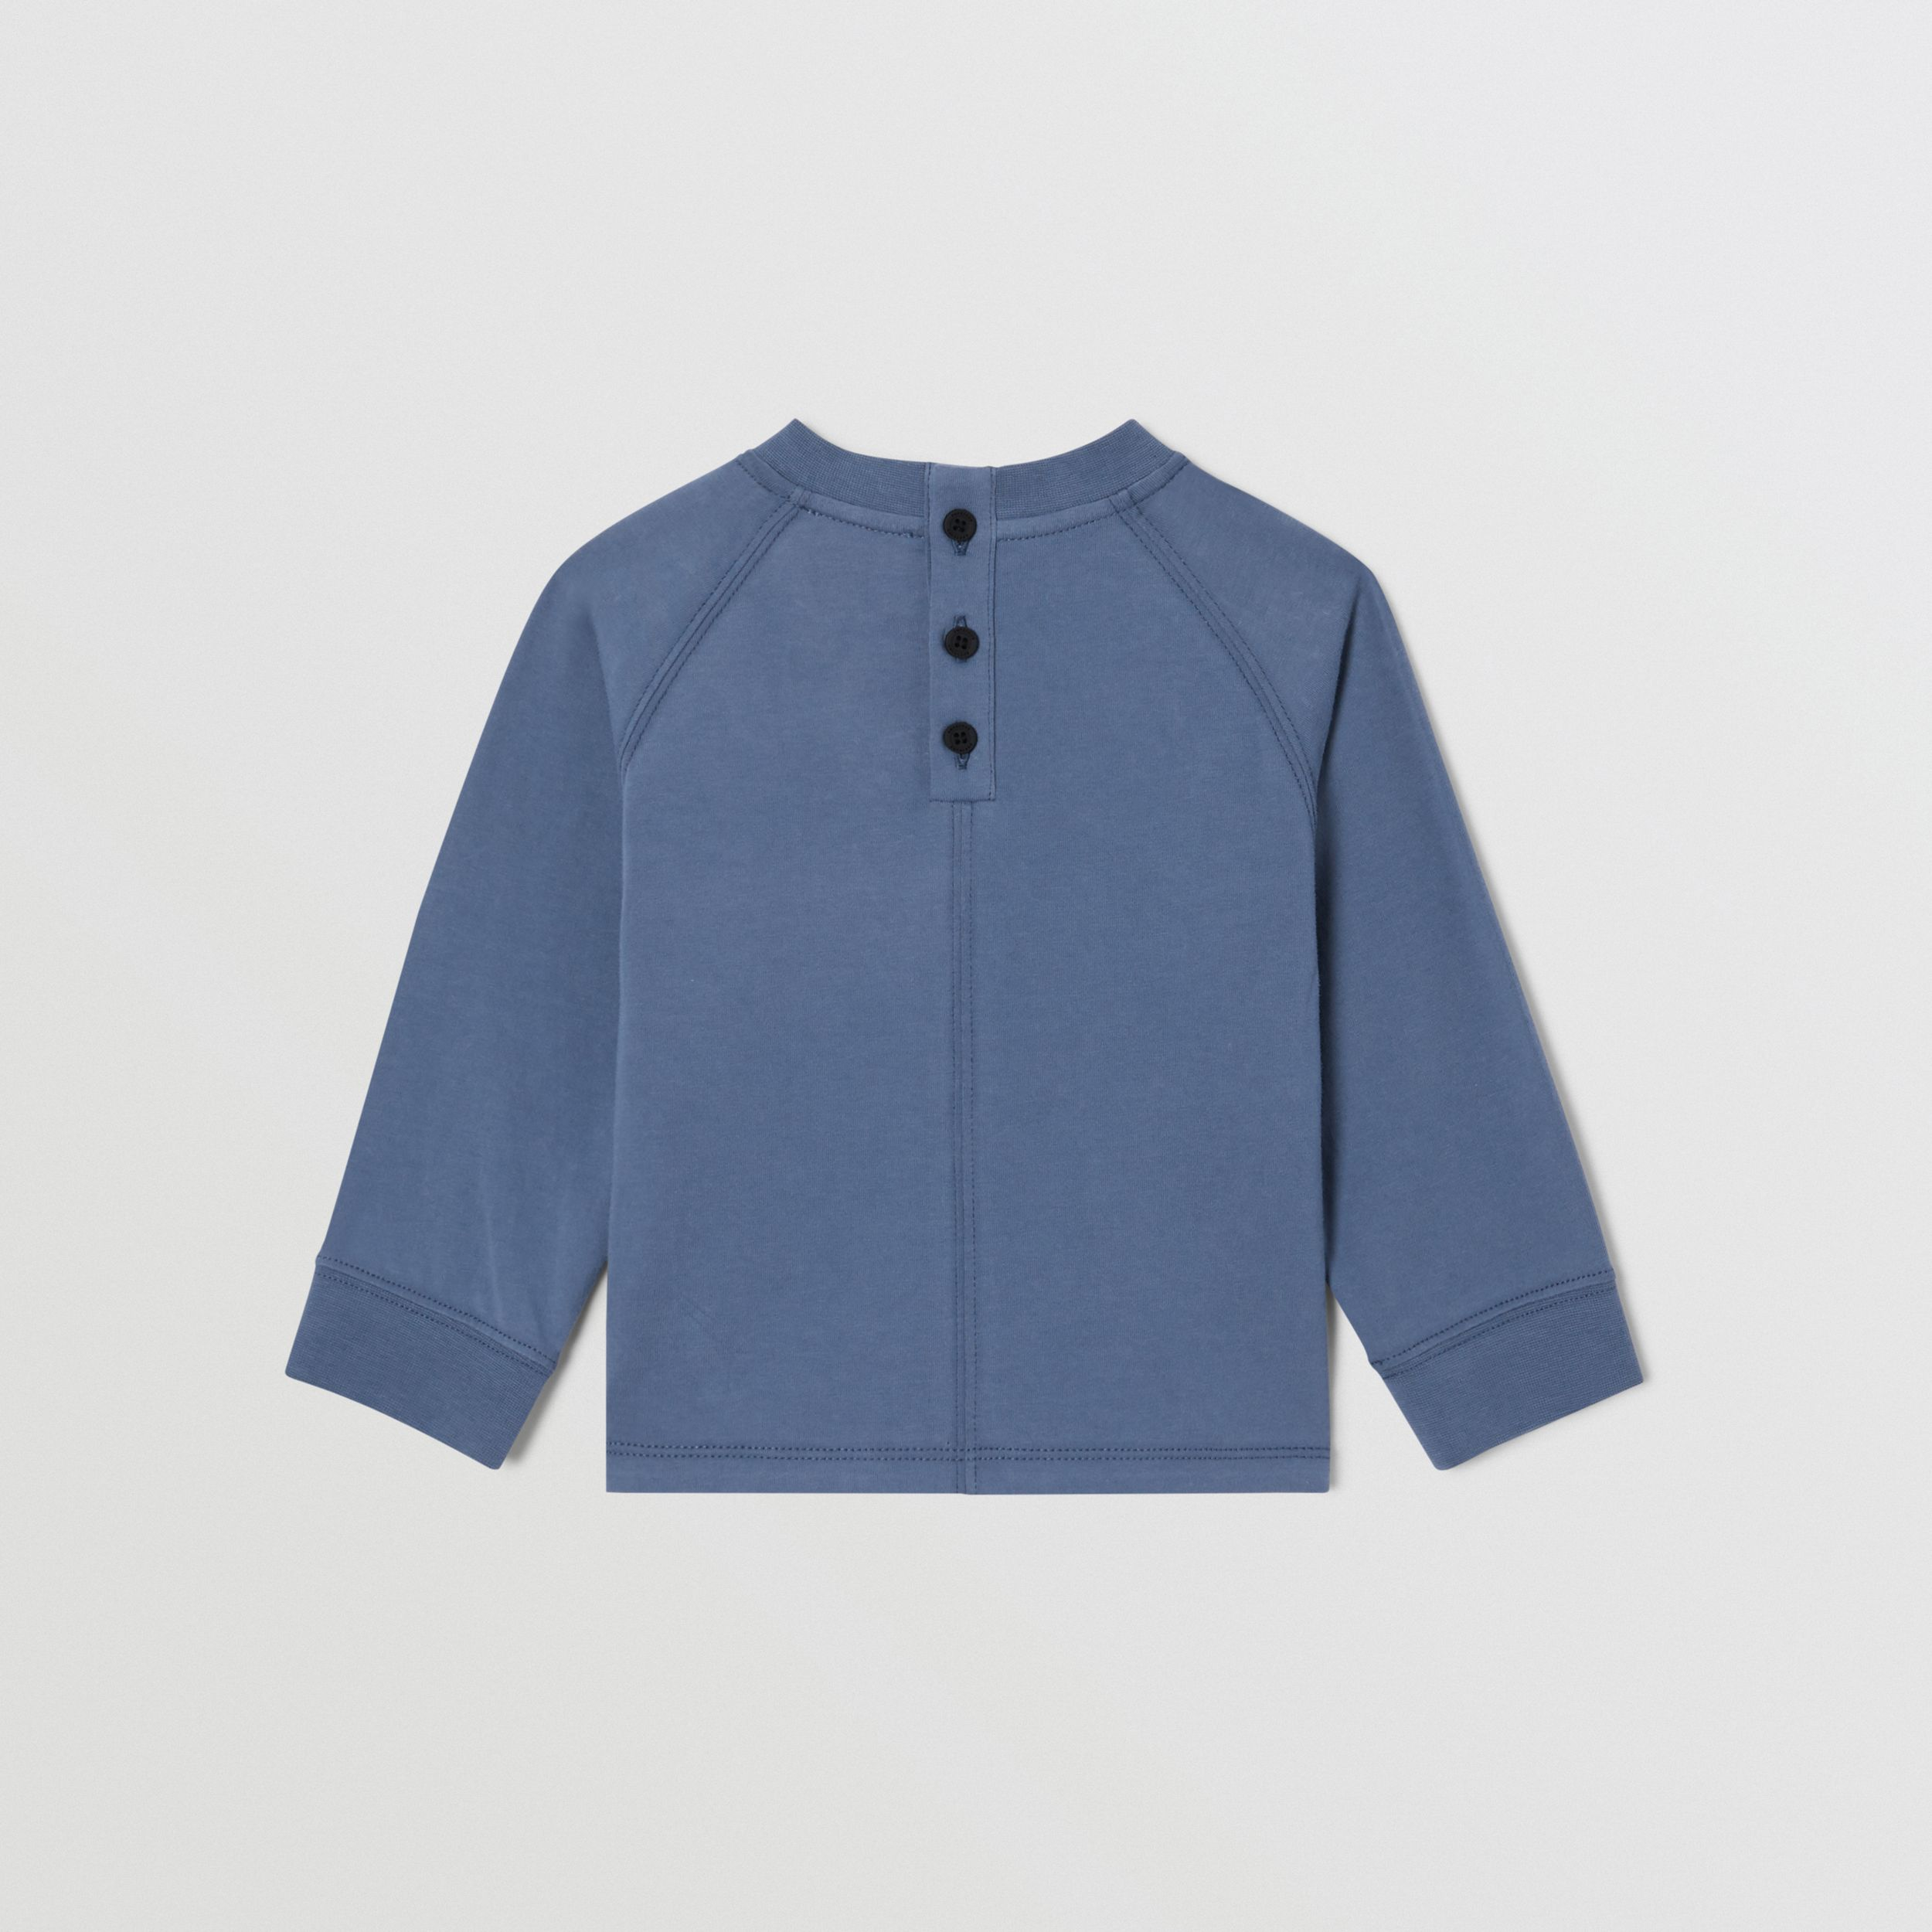 Long-sleeve Logo Print Cotton Top in Steel Blue - Children | Burberry - 4